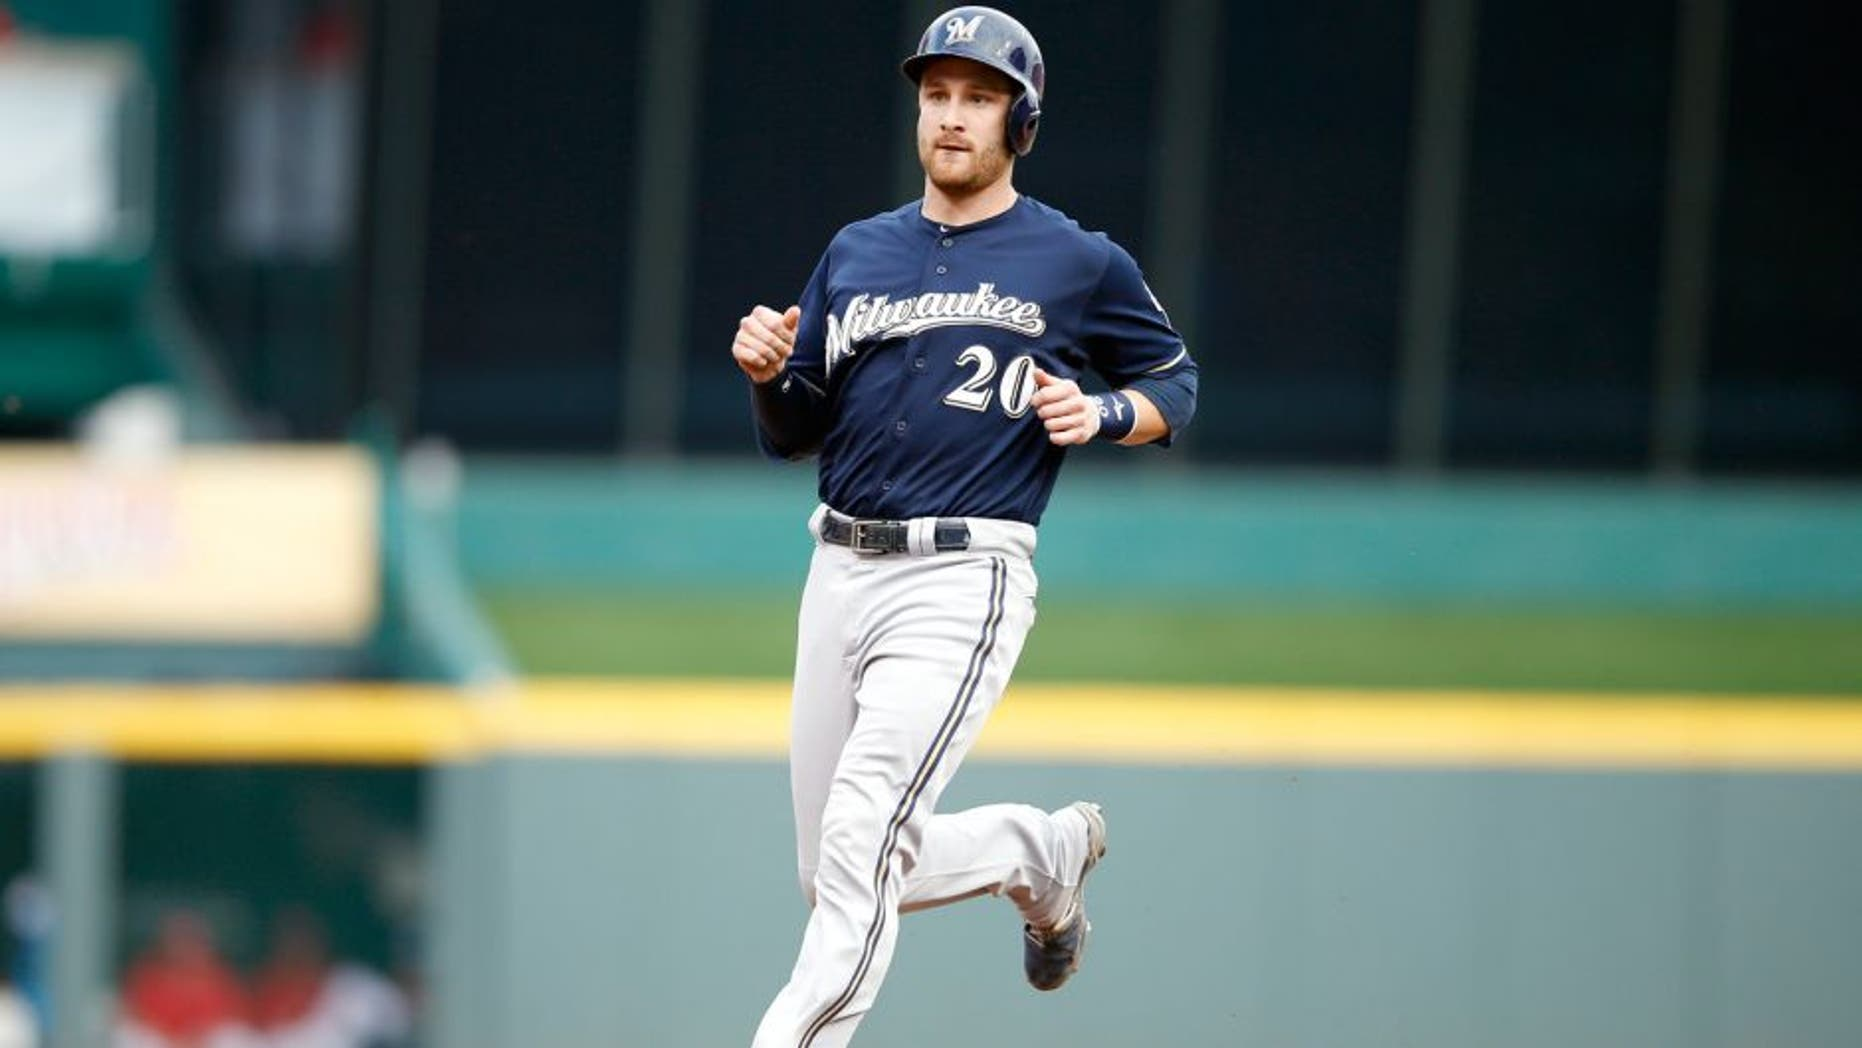 CINCINNATI, OH - JULY 3: Jonathan Lucroy #20 of the Milwaukee Brewers runs the bases against the Cincinnati Reds during the game at Great American Ball Park on July 3, 2015 in Cincinnati, Ohio. The Brewers defeated the Reds 12-1. (Photo by Joe Robbins/Getty Images)